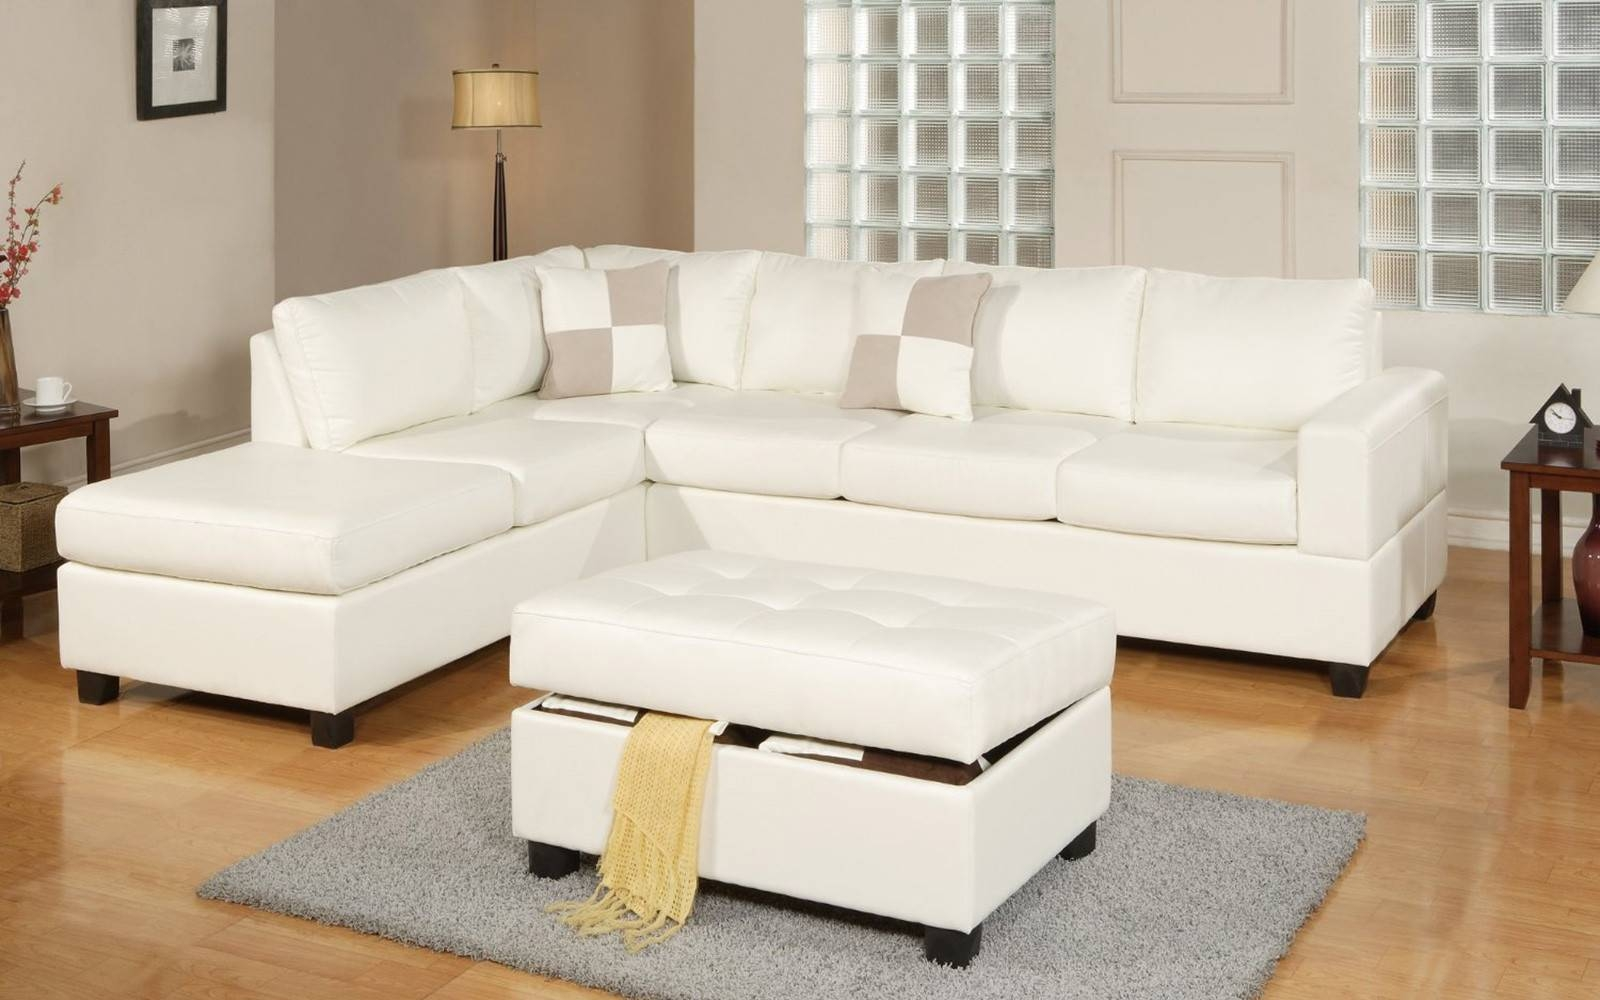 3 Piece Modern Reversible Tufted Bonded Leather Sectional Sofa regarding Sofa With Chaise and Ottoman (Image 2 of 30)